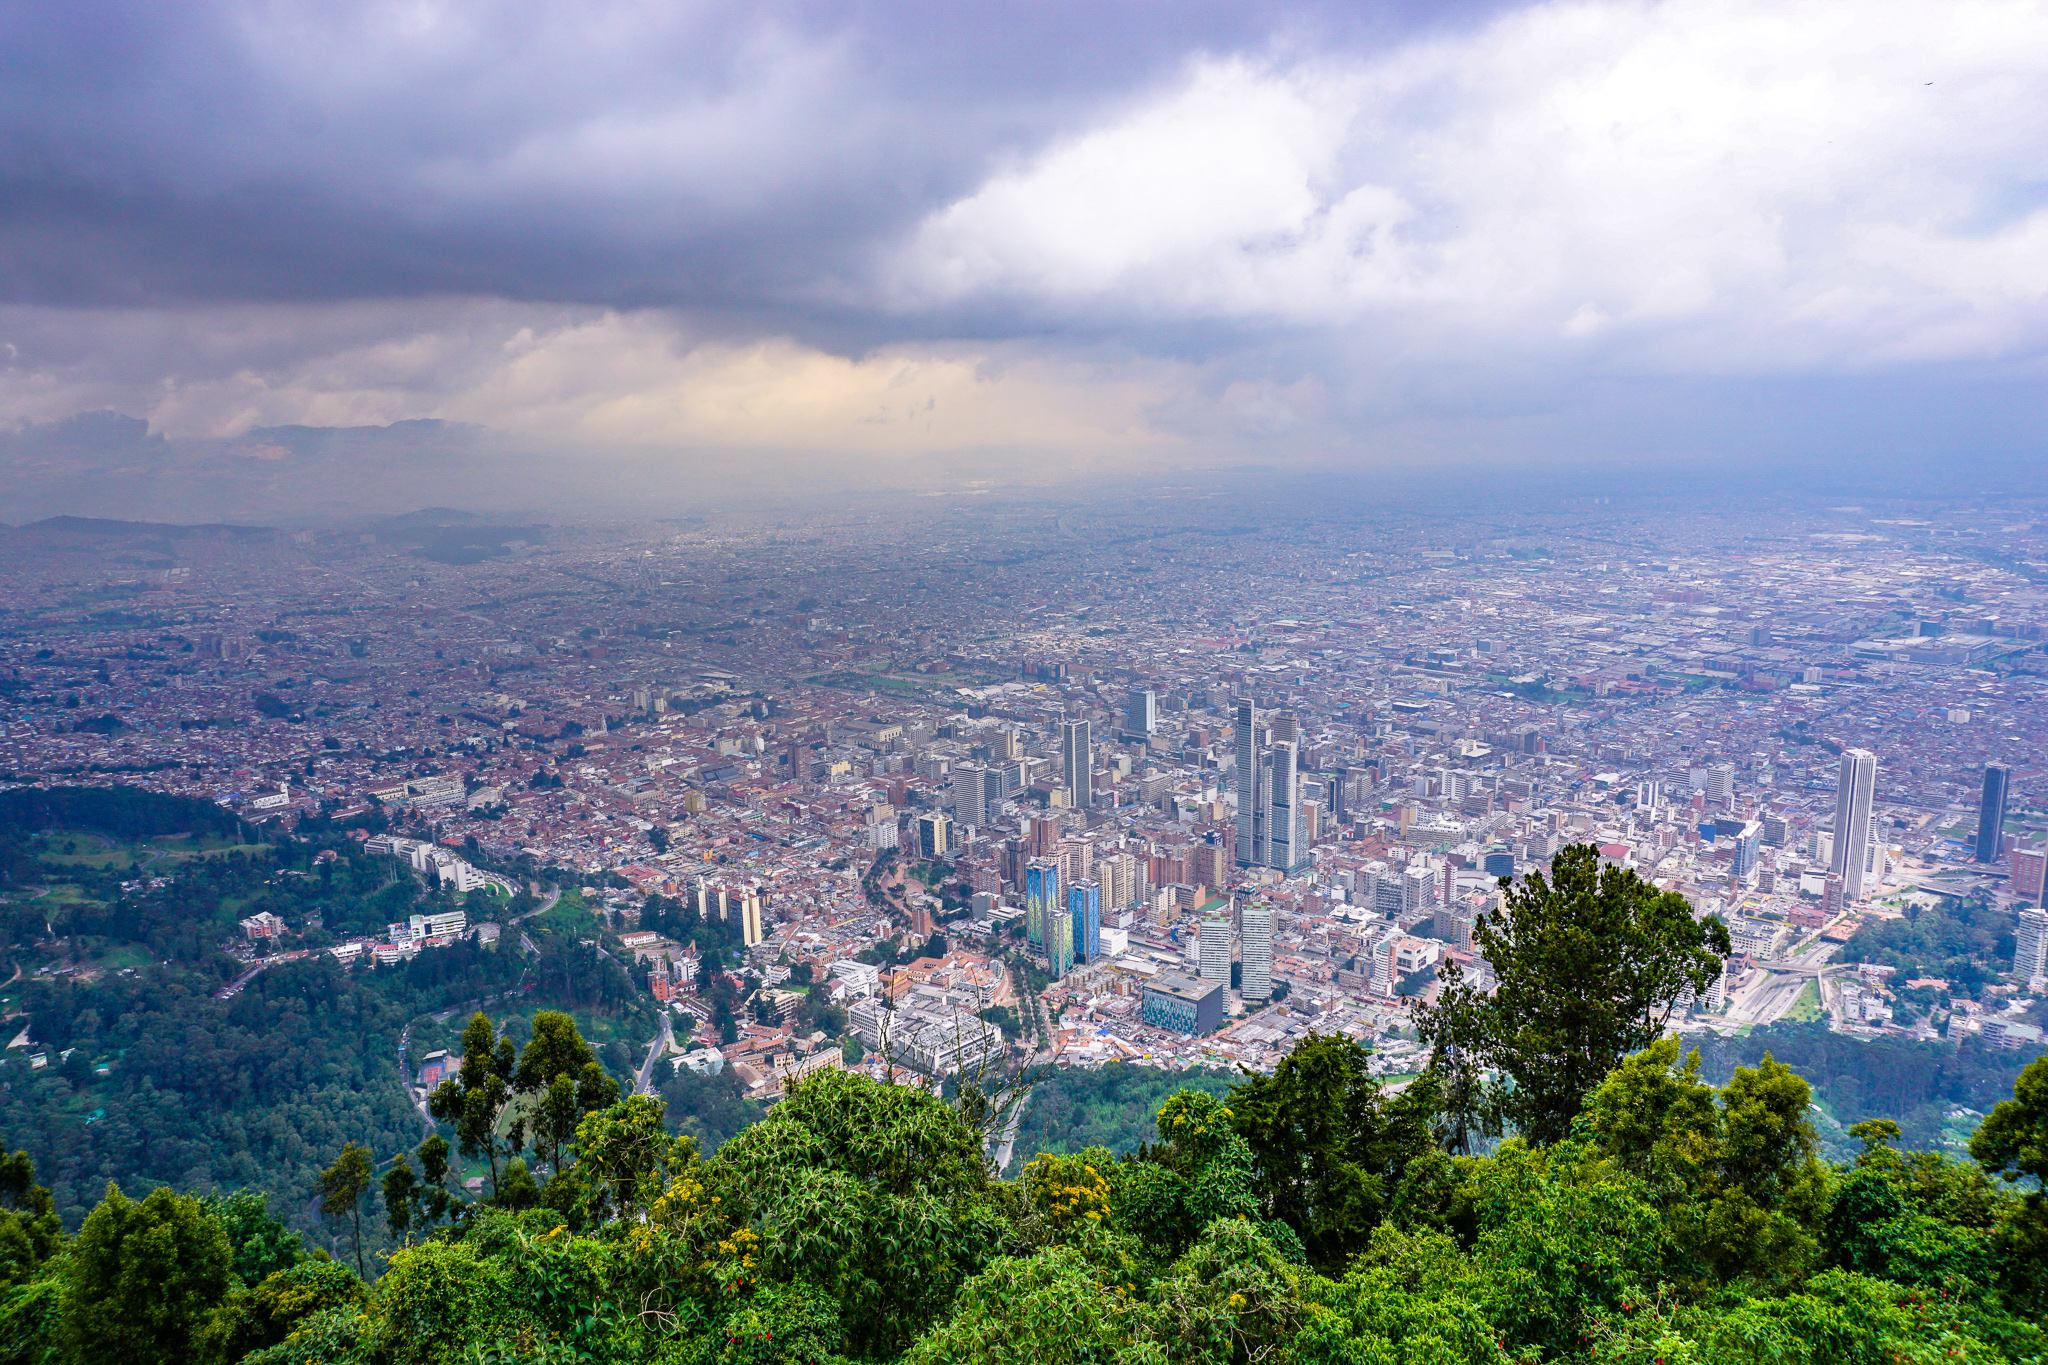 Copy of View from Monserrate Mountain